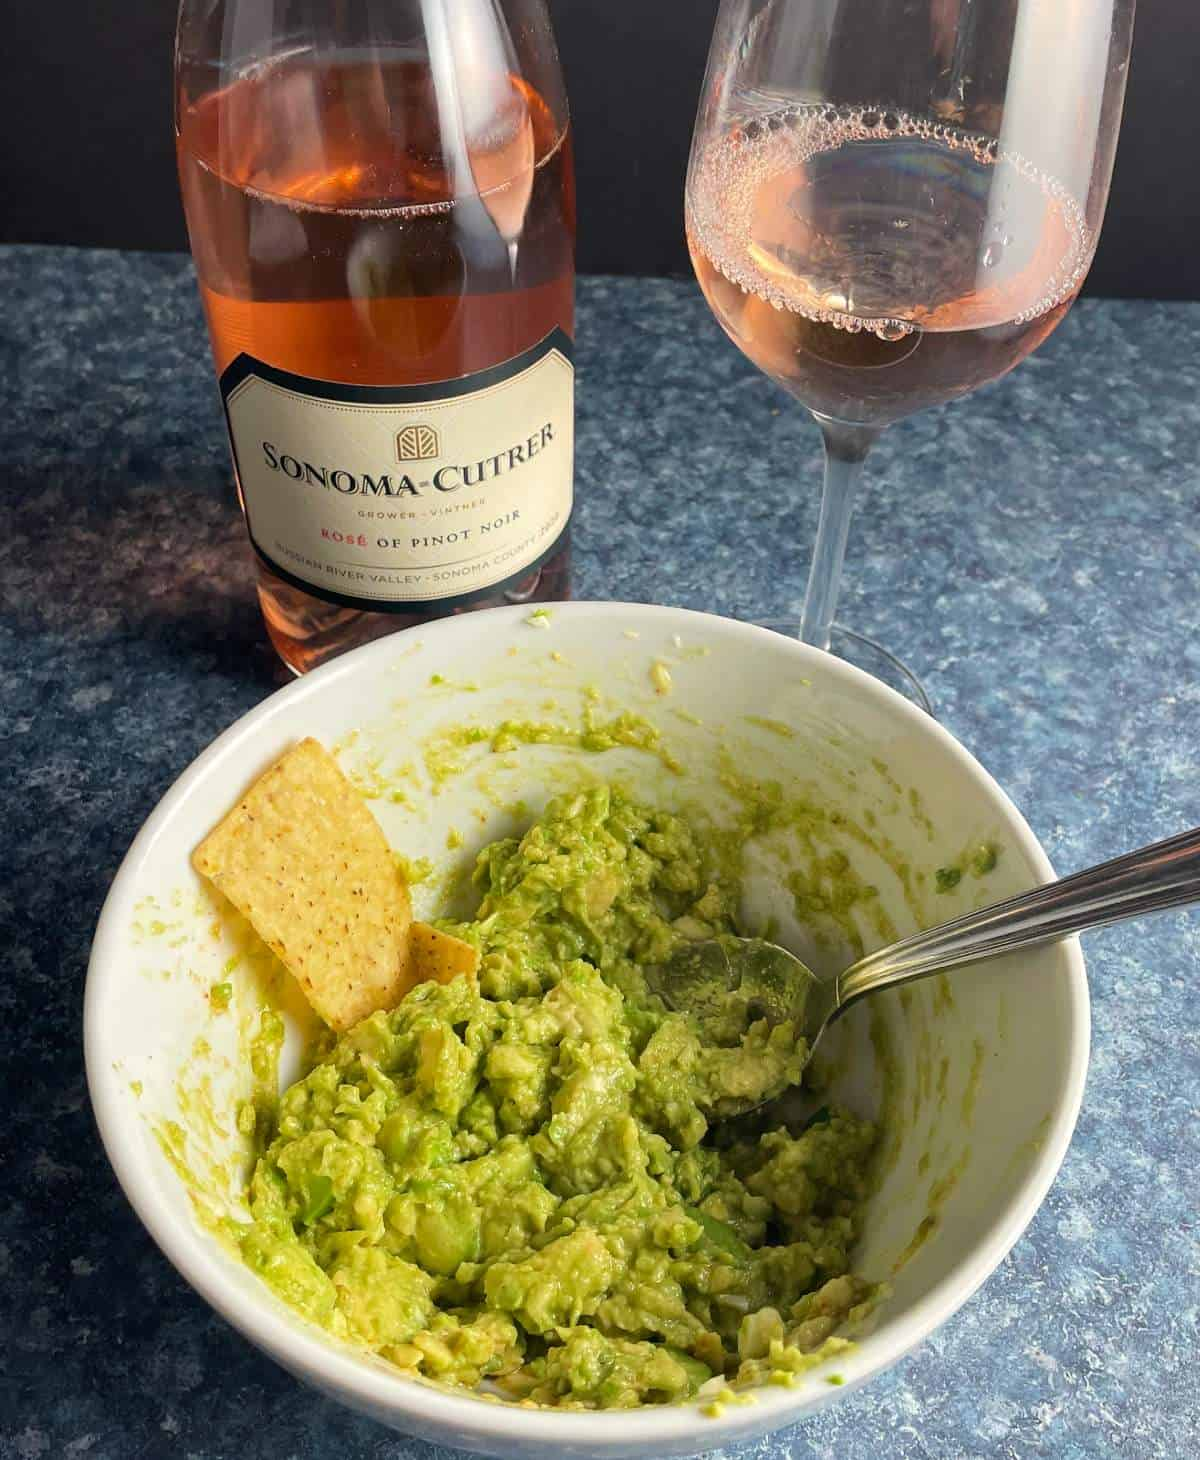 Sonoma-Cutrer Rosé wine paired with guacamole.